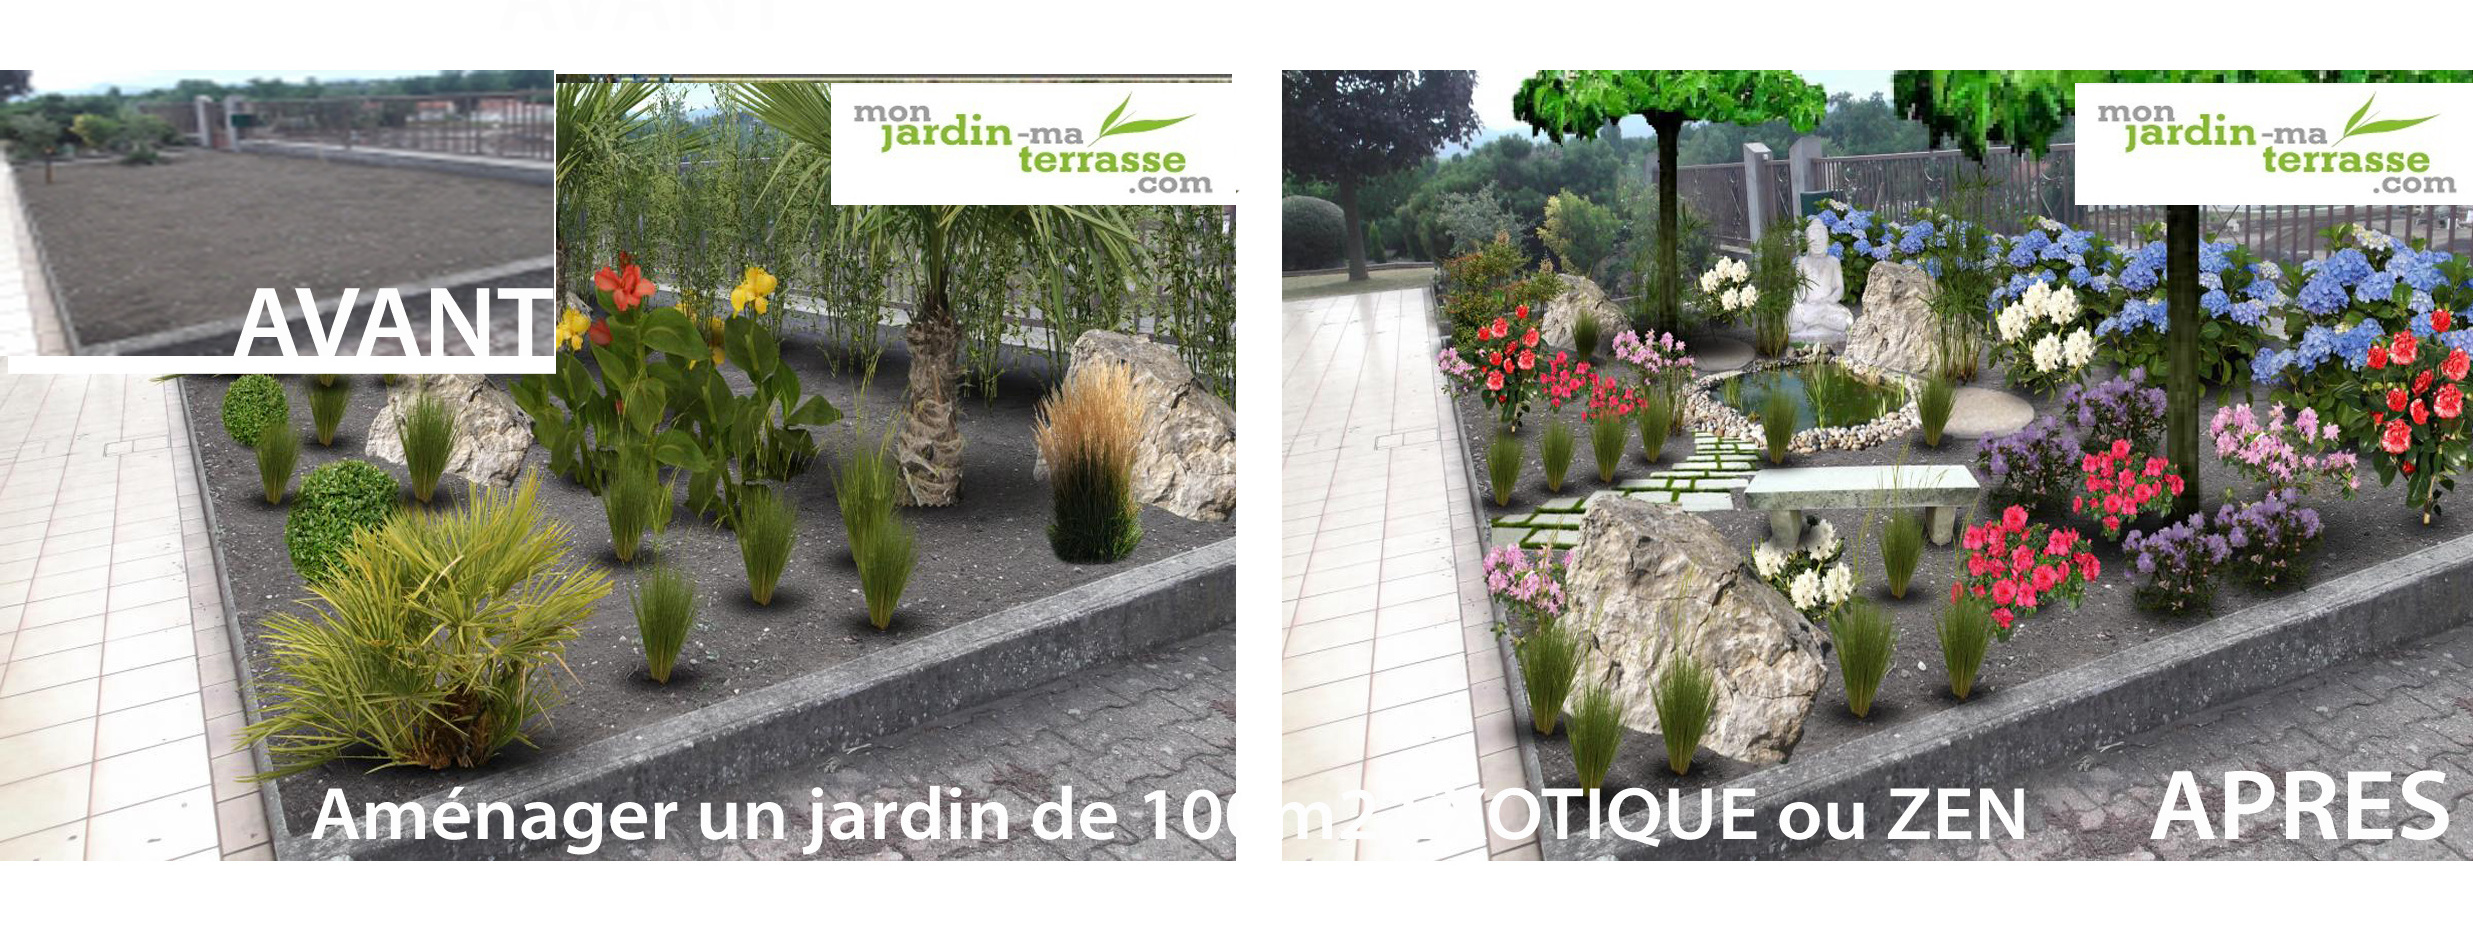 Am nager un jardin de 100m2 monjardin for Amenagement jardin 100m2